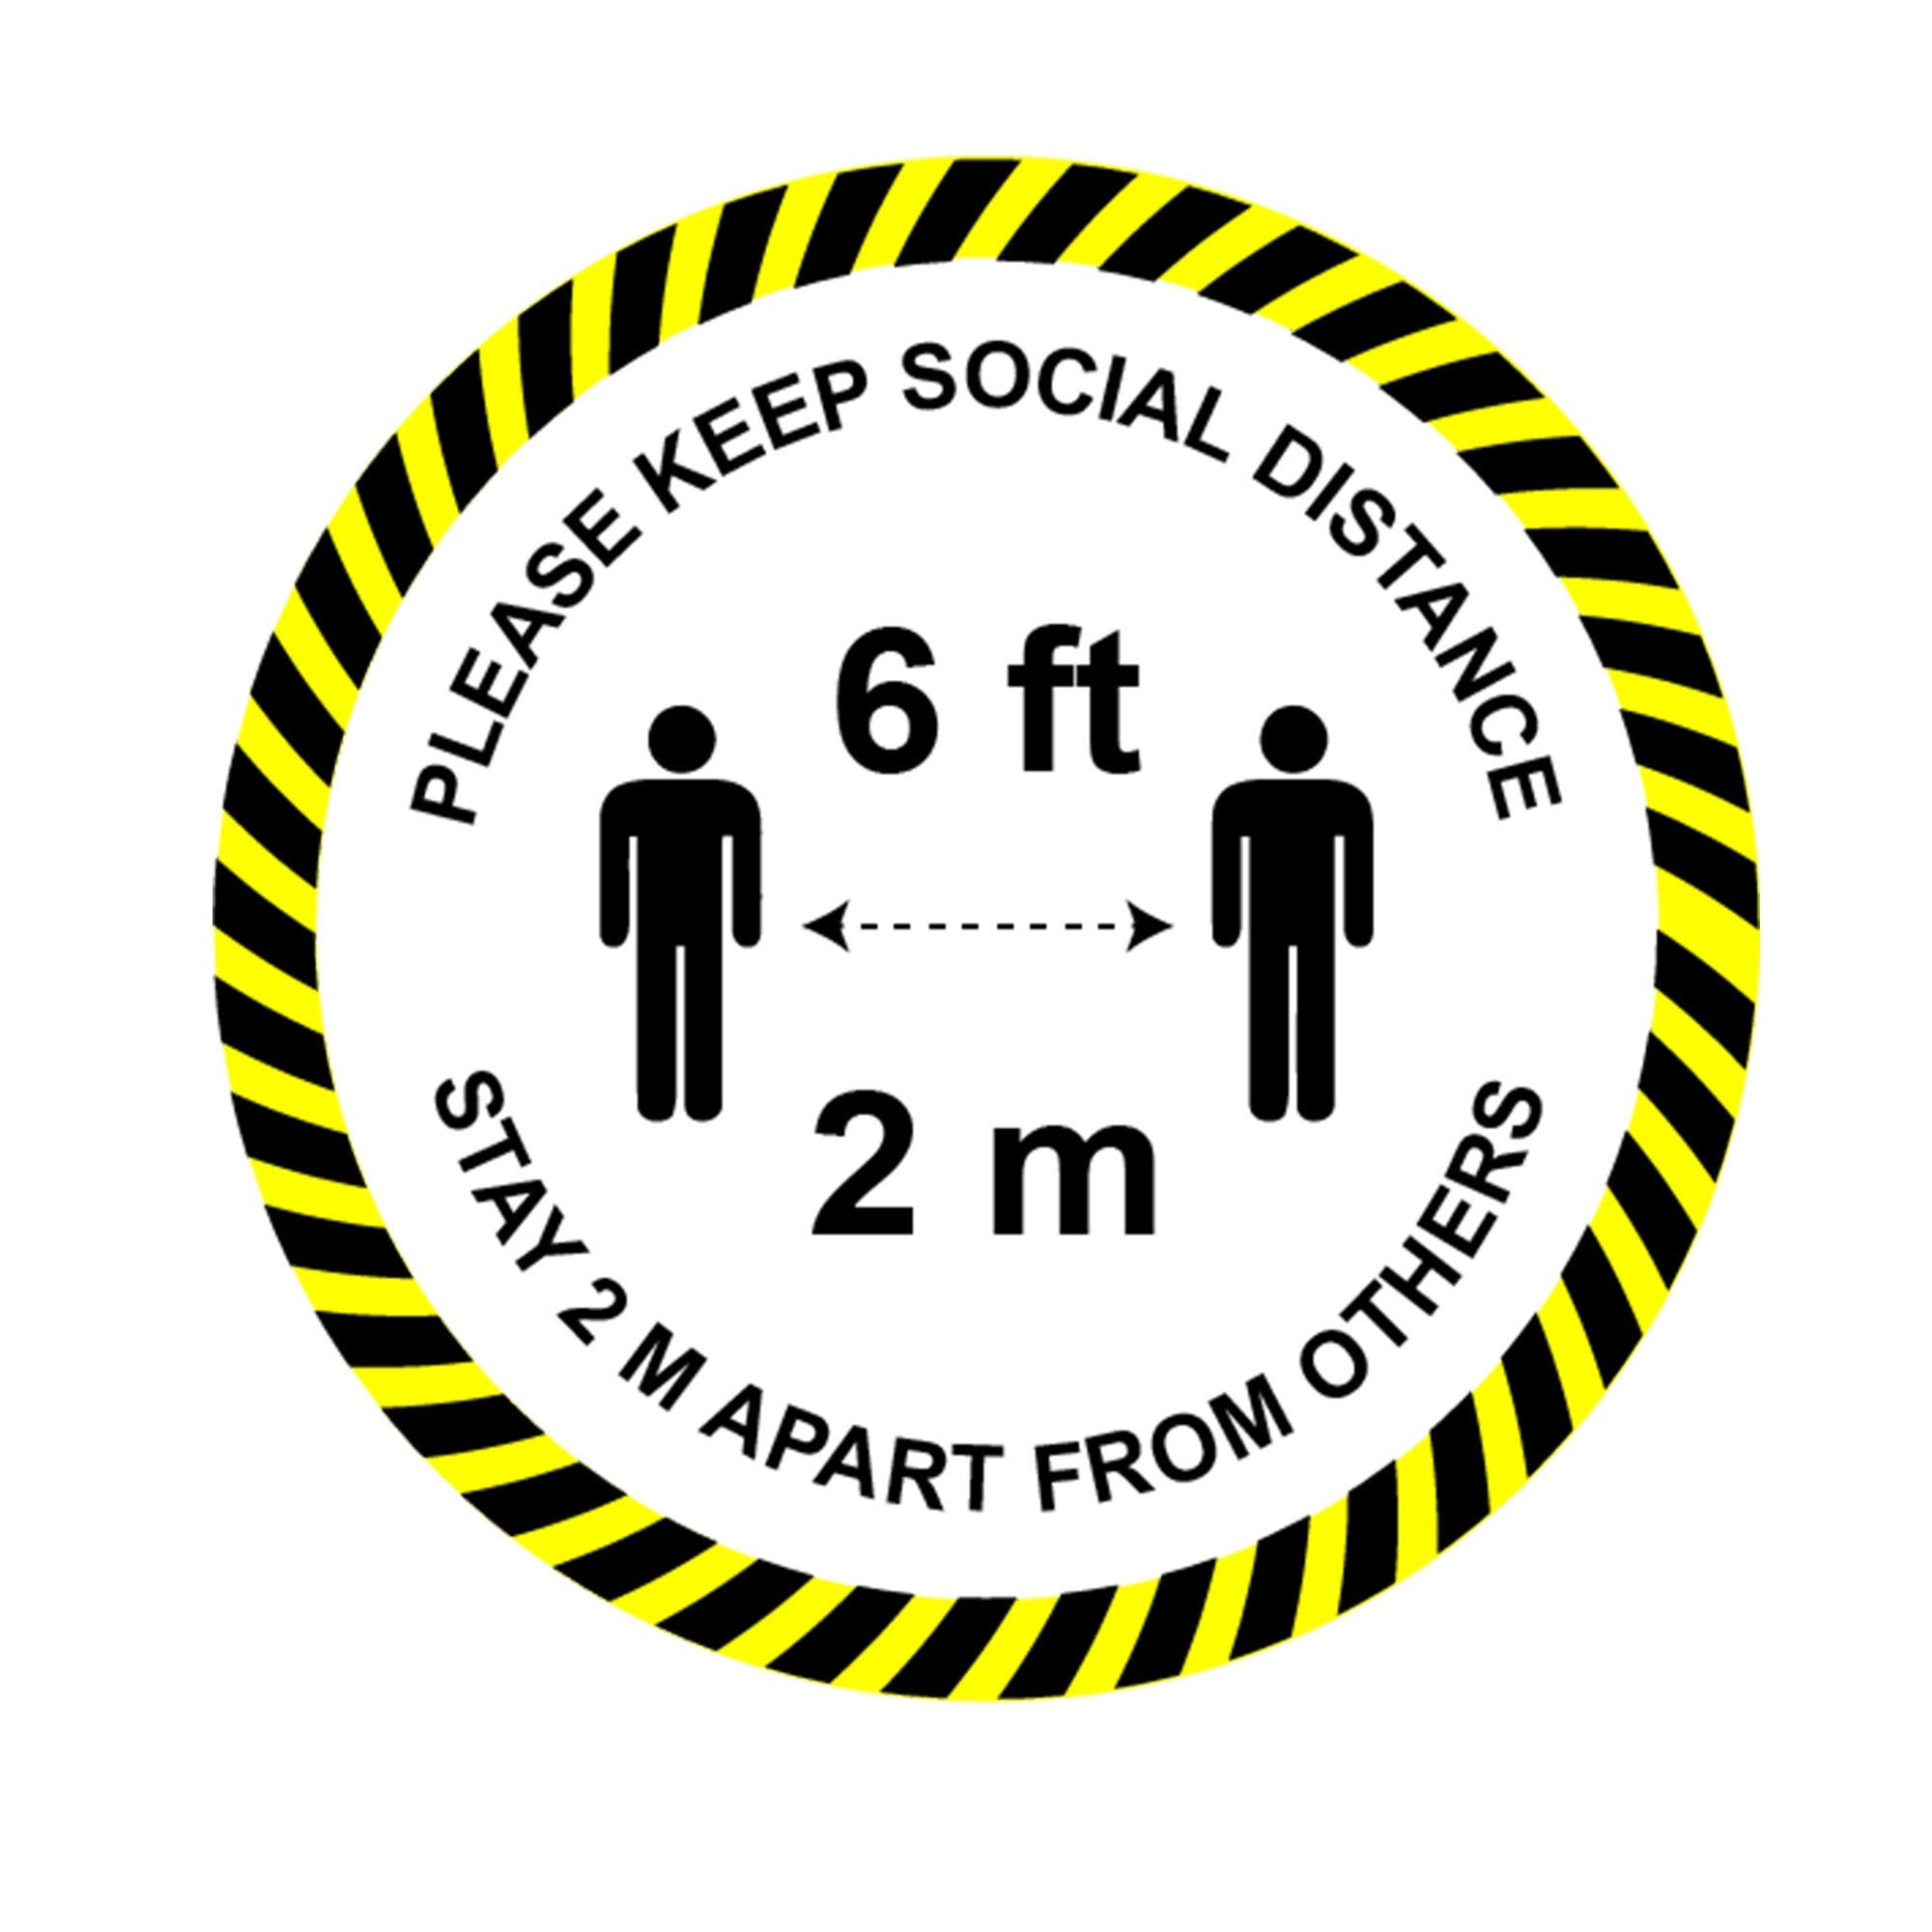 Pin on Social distancing stickers